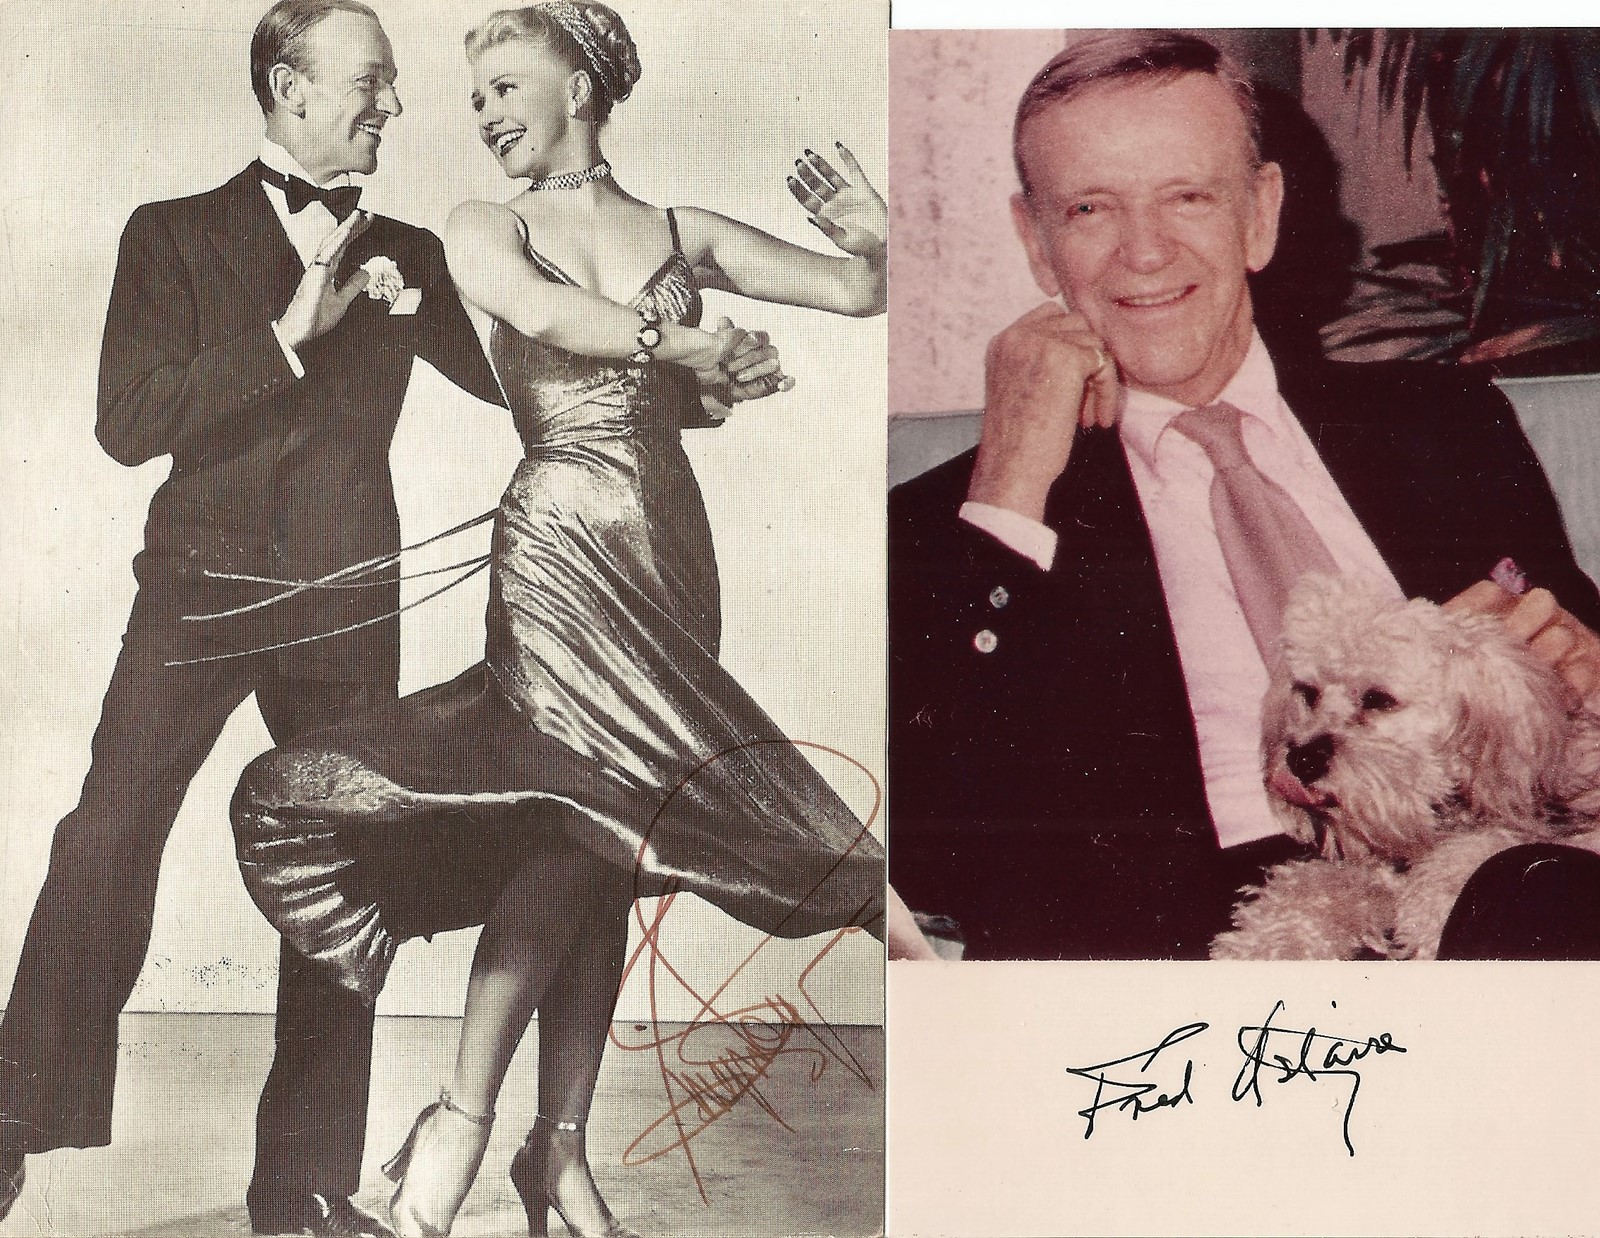 Fred Astaire and Ginger Rogers signatures on individual photos. Good condition. All autographs